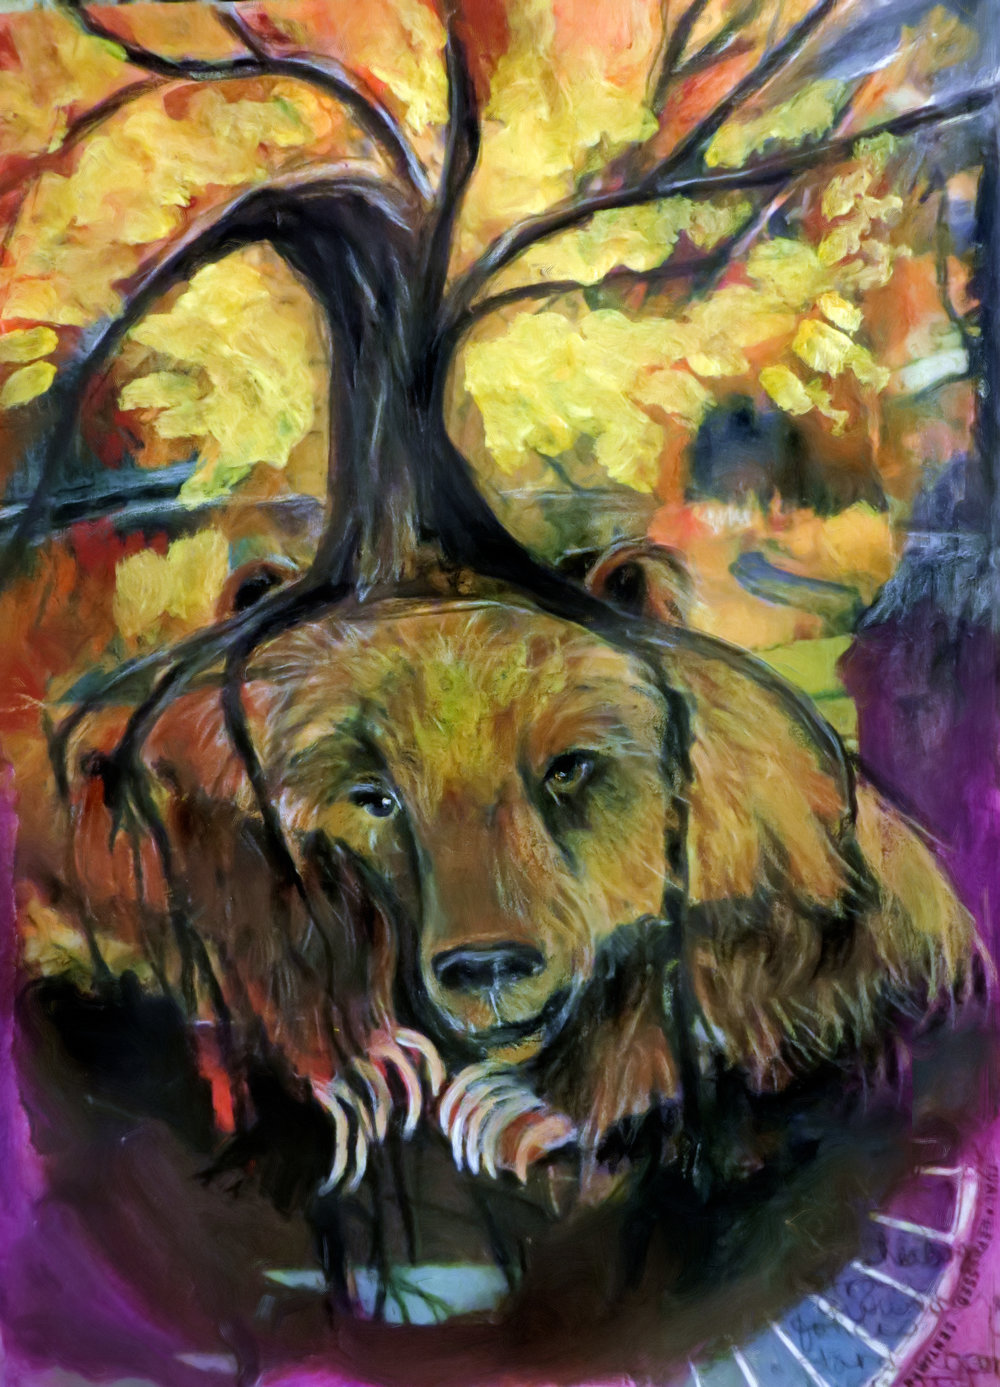 Fonda Haight - Grounded bear final.jpg